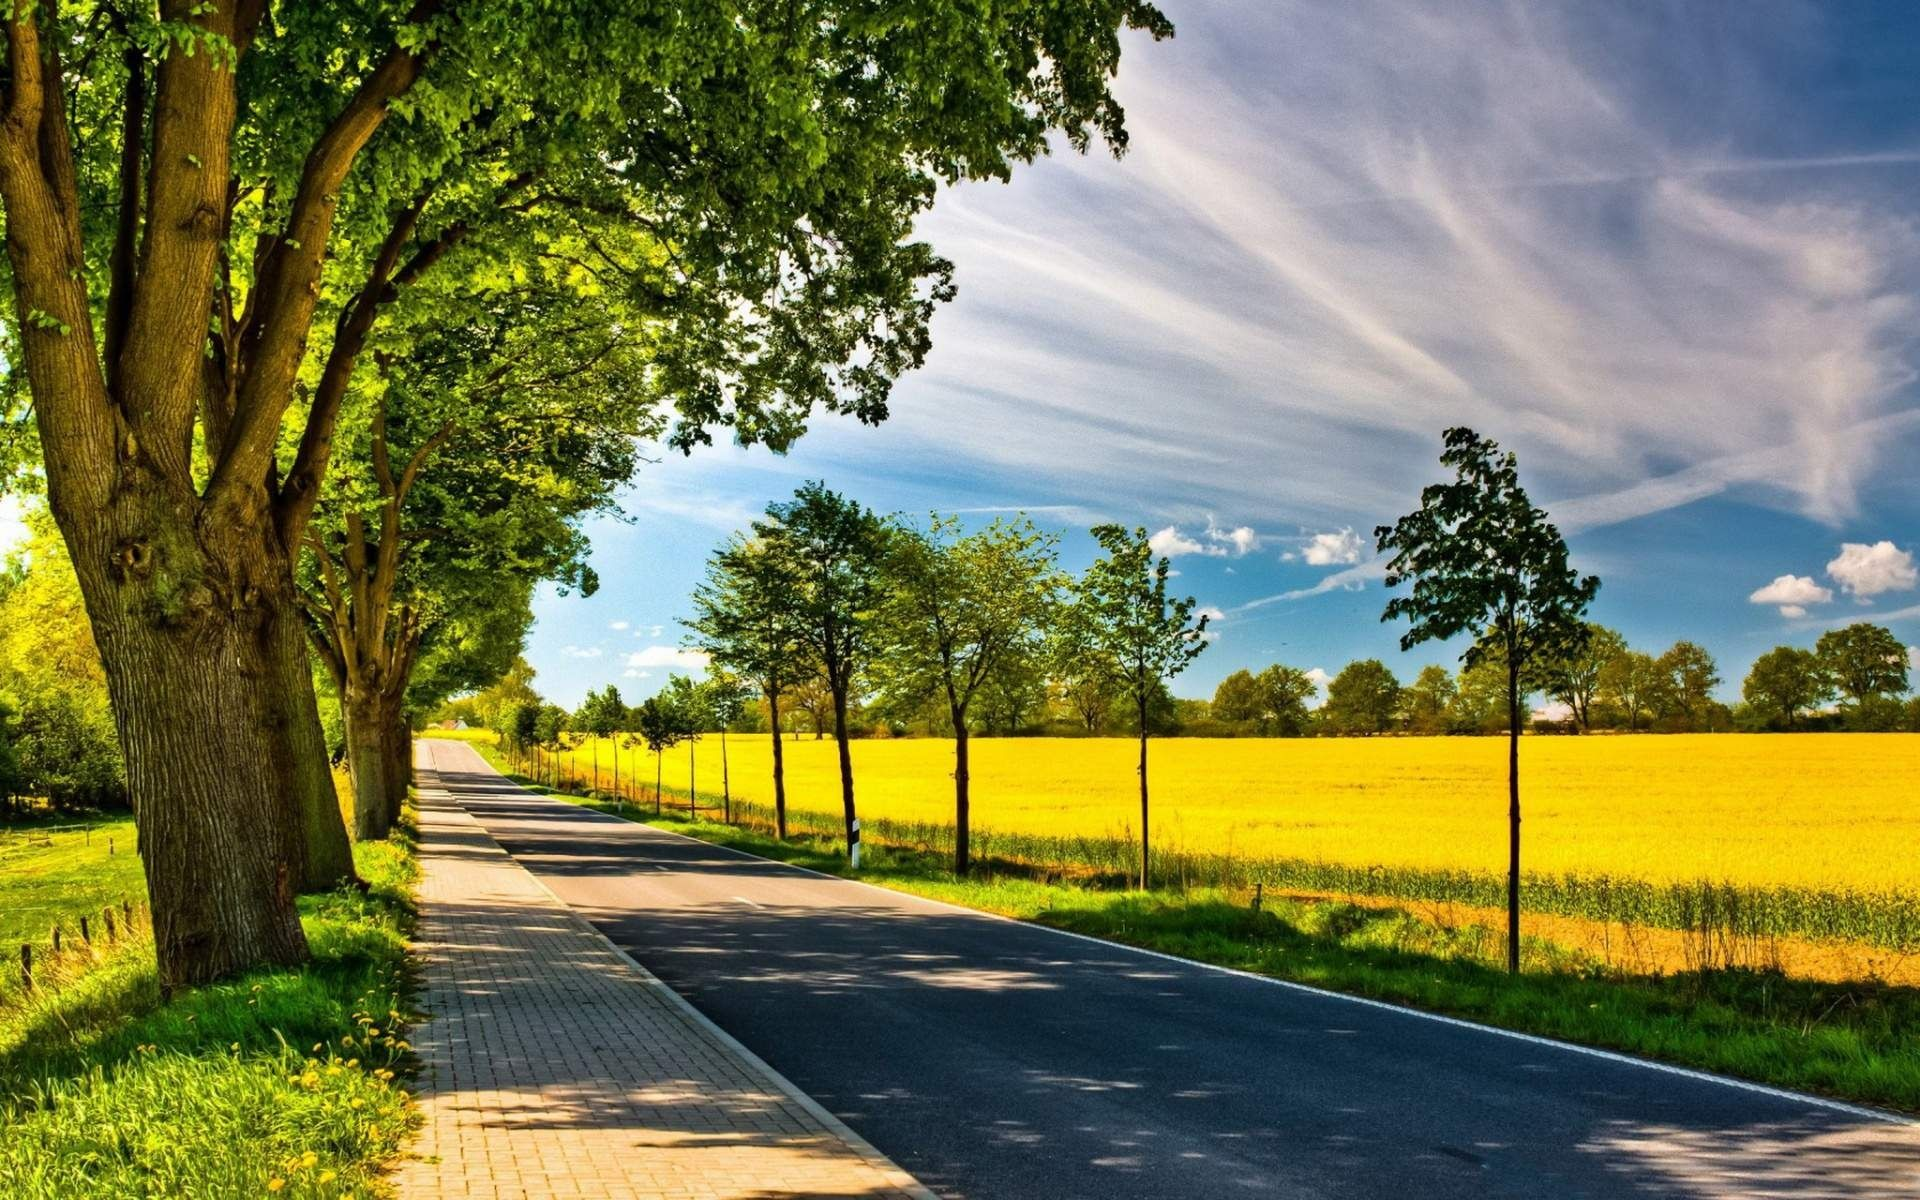 hd landscape wallpapers android apps on google play 1920a—1200 natural landscape wallpapers hd